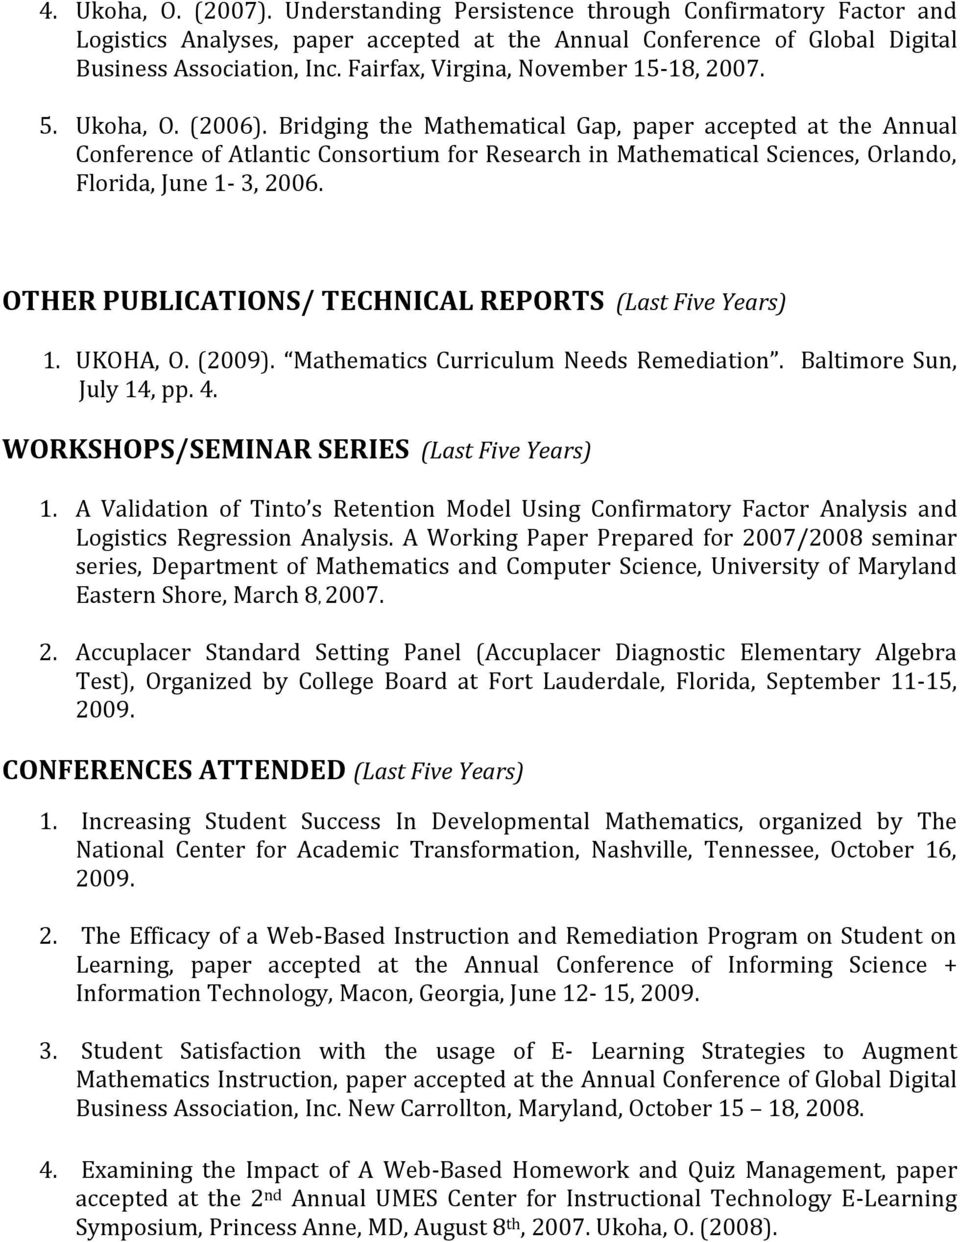 Bridging the Mathematical Gap, paper accepted at the Annual Conference of Atlantic Consortium for Research in Mathematical Sciences, Orlando, Florida, June 1-3, 2006.